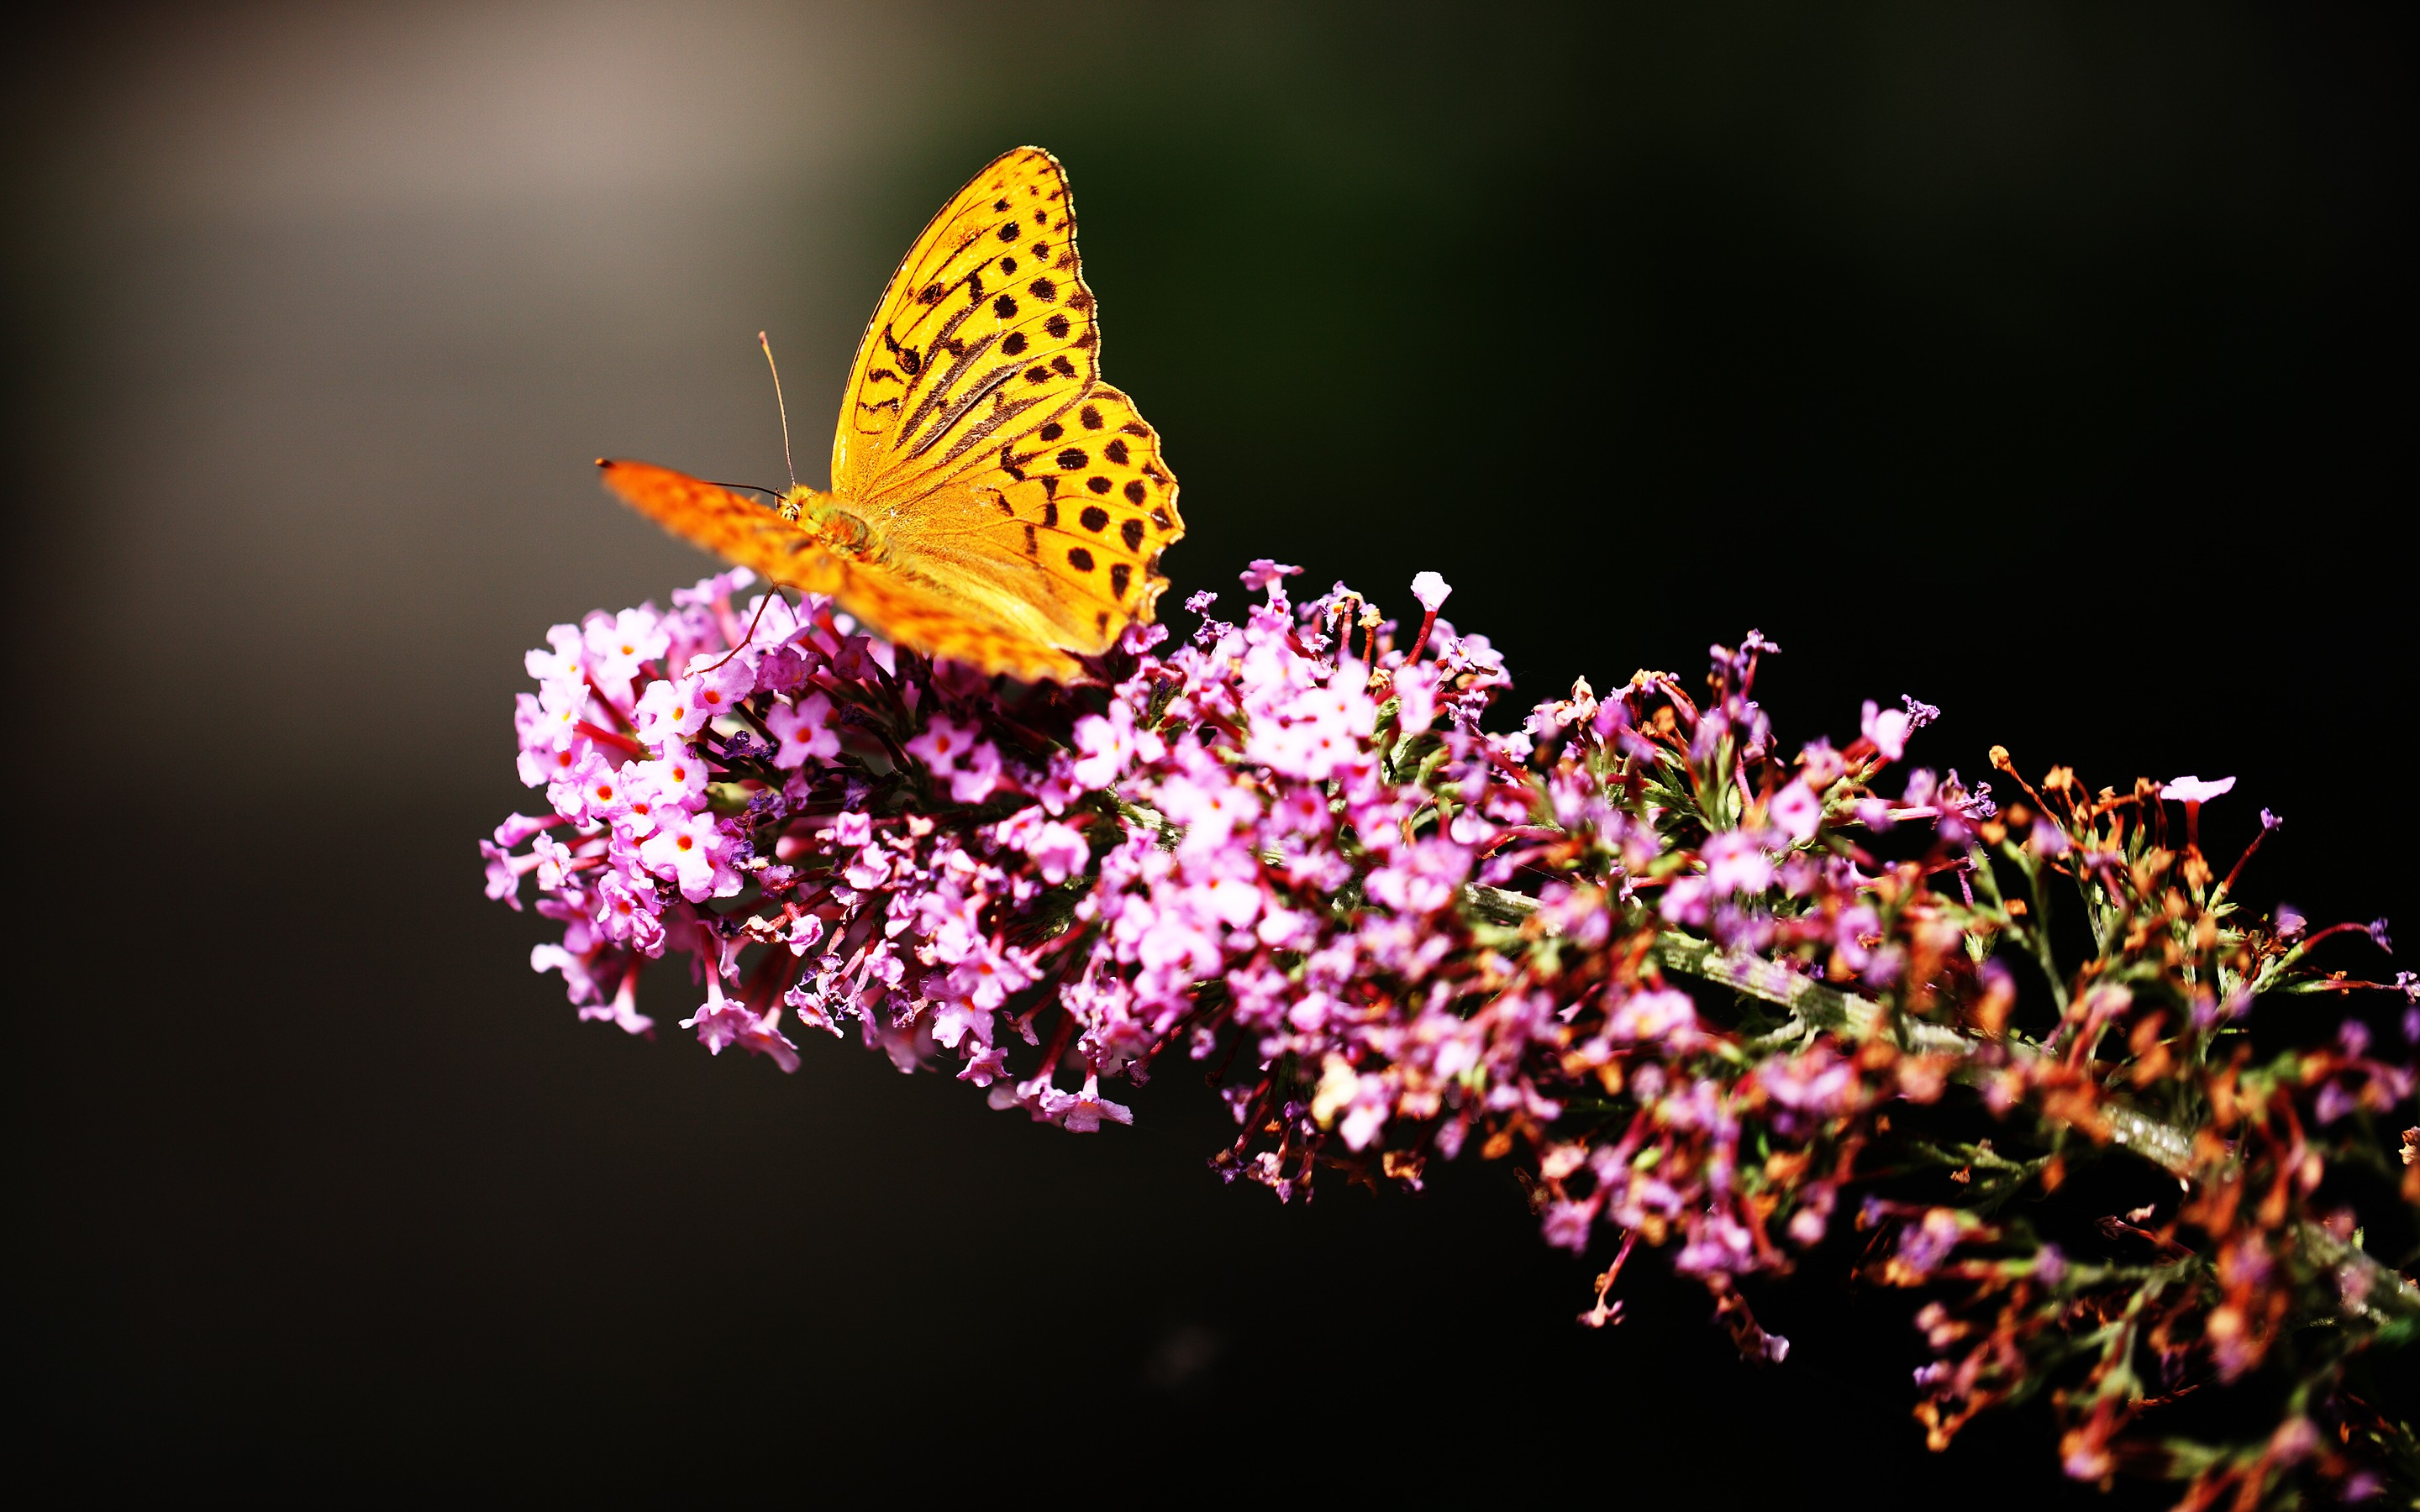 1920x1080 Butterfly In Garden Laptop Full Hd 1080p Hd 4k Wallpapers Images Backgrounds Photos And Pictures